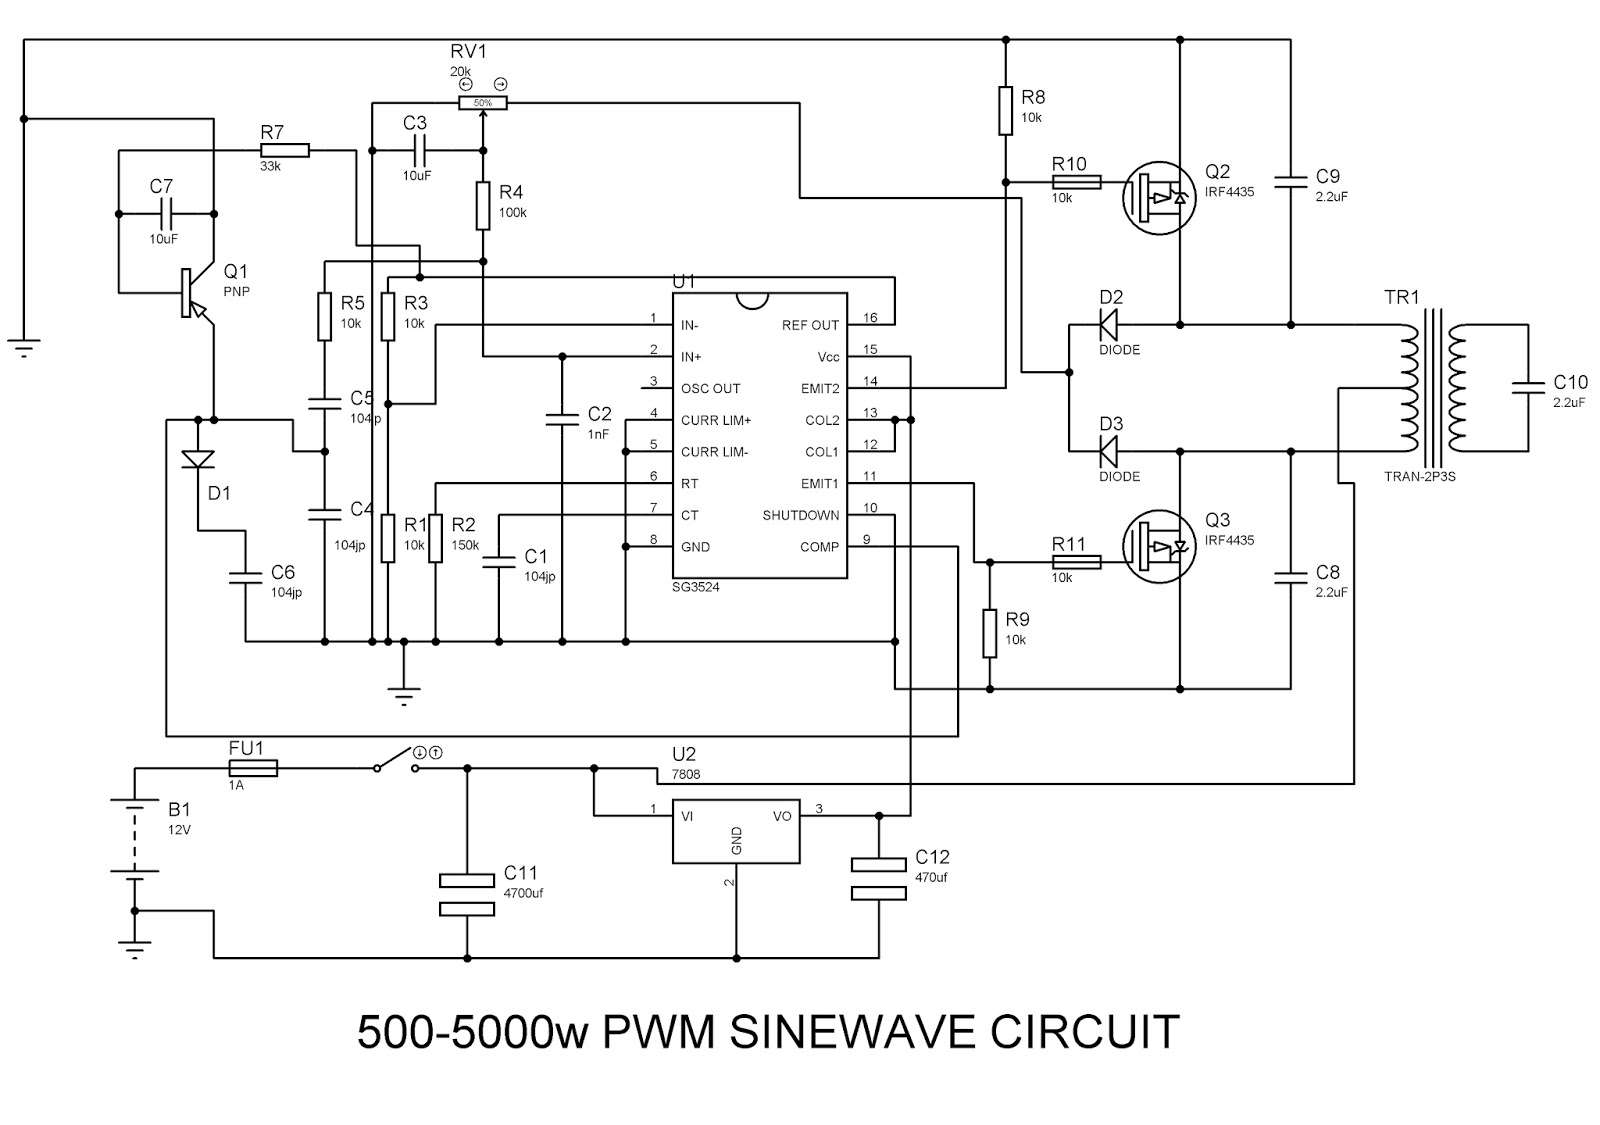 sinewave inverter circuit sg3524(pwm) - sl technological ... circuit diagram of an inverter a labelled diagram of an anemometer